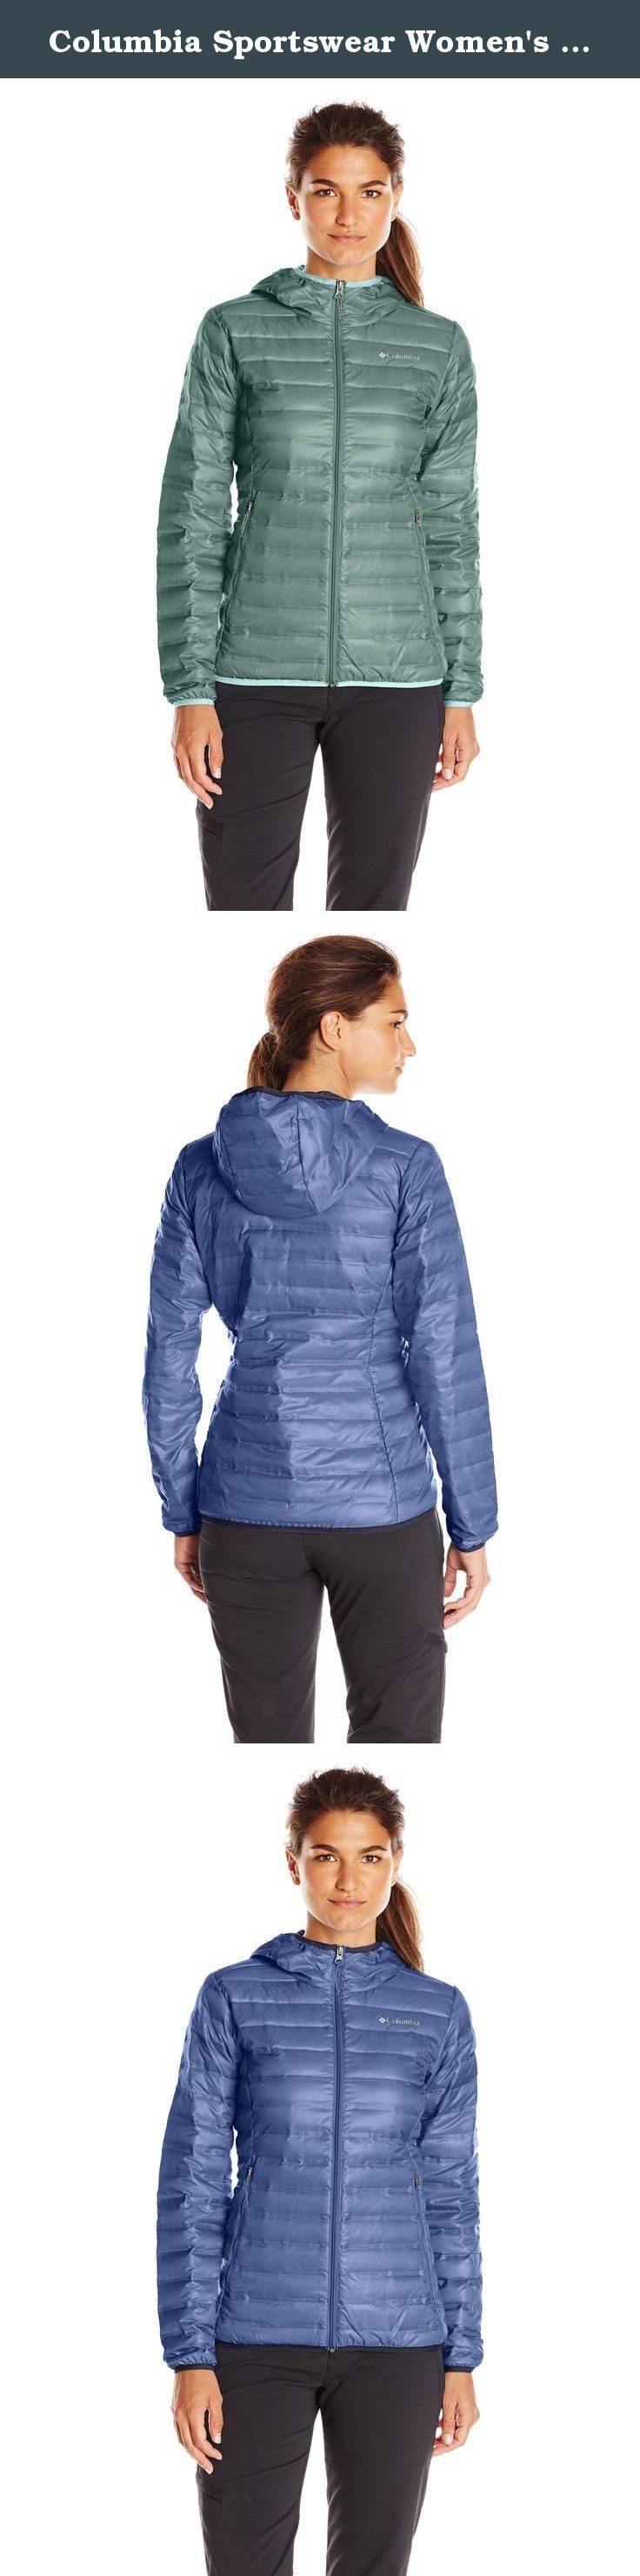 "Columbia Sportswear Women's Flash Forward Hooded Down Jacket. When the weather turns chilly, this lightweight, packable 650 fill-power hooded down jacket will help keep you warm and snug. HEAT SEAL ""no-sew"" bonded baffles reduces water penetration and keeps down from migrating, giving it a modern, sleek and streamlined aesthetic. Perfect for mild winter conditions or as a layering piece on colder days. Material: Polyester."